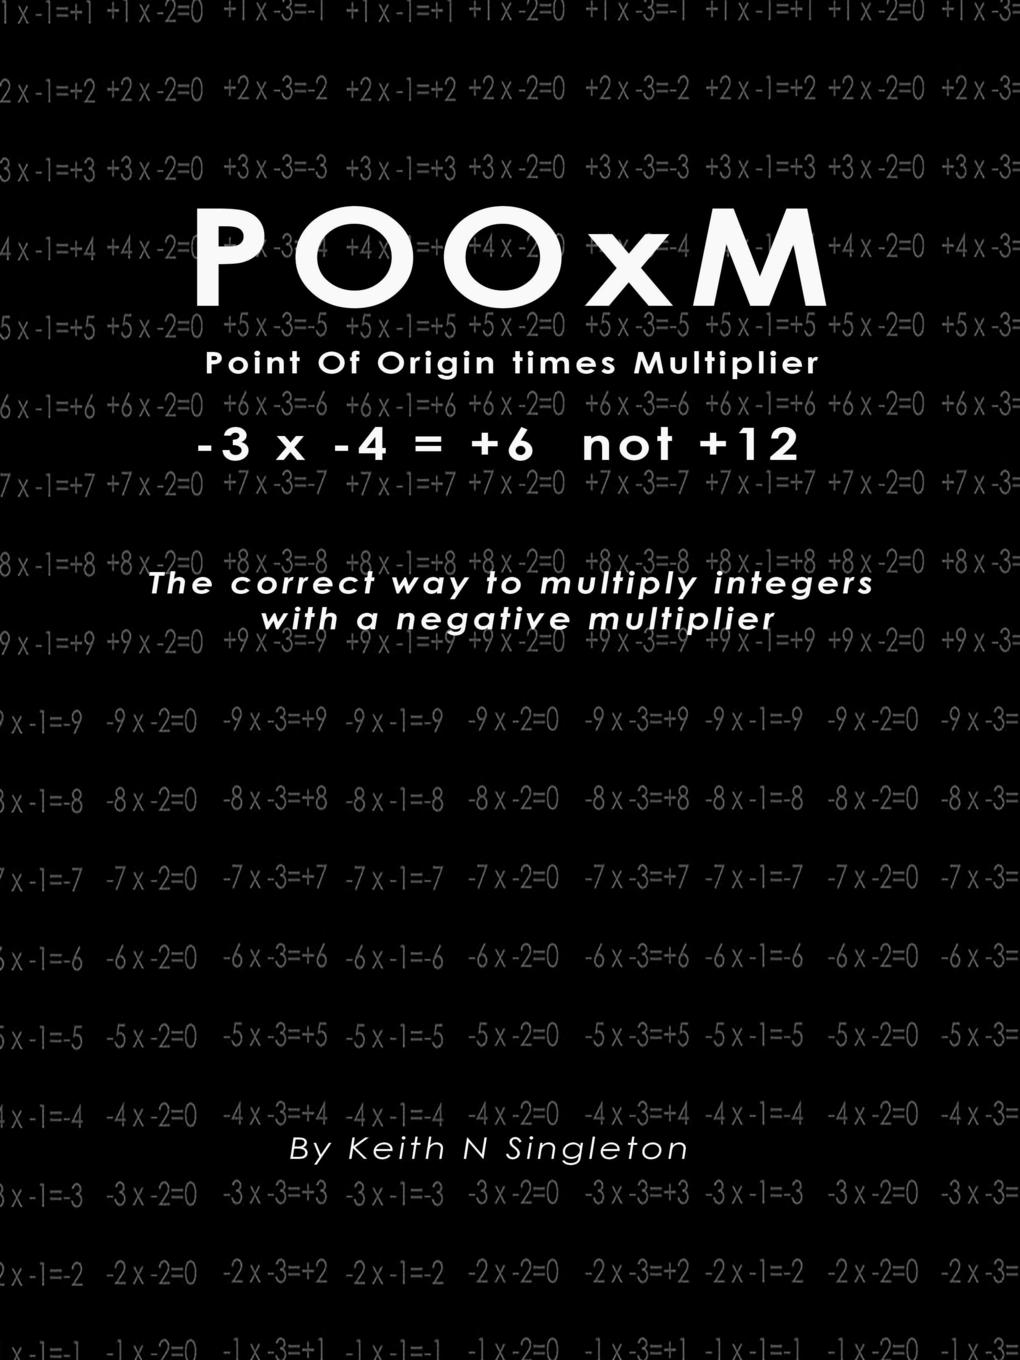 Keith Singleton POOxM ( Point Of Origin times Multiplier) -3 x -4 . .6 not .12 jd mcpherson jd mcpherson let the good times roll